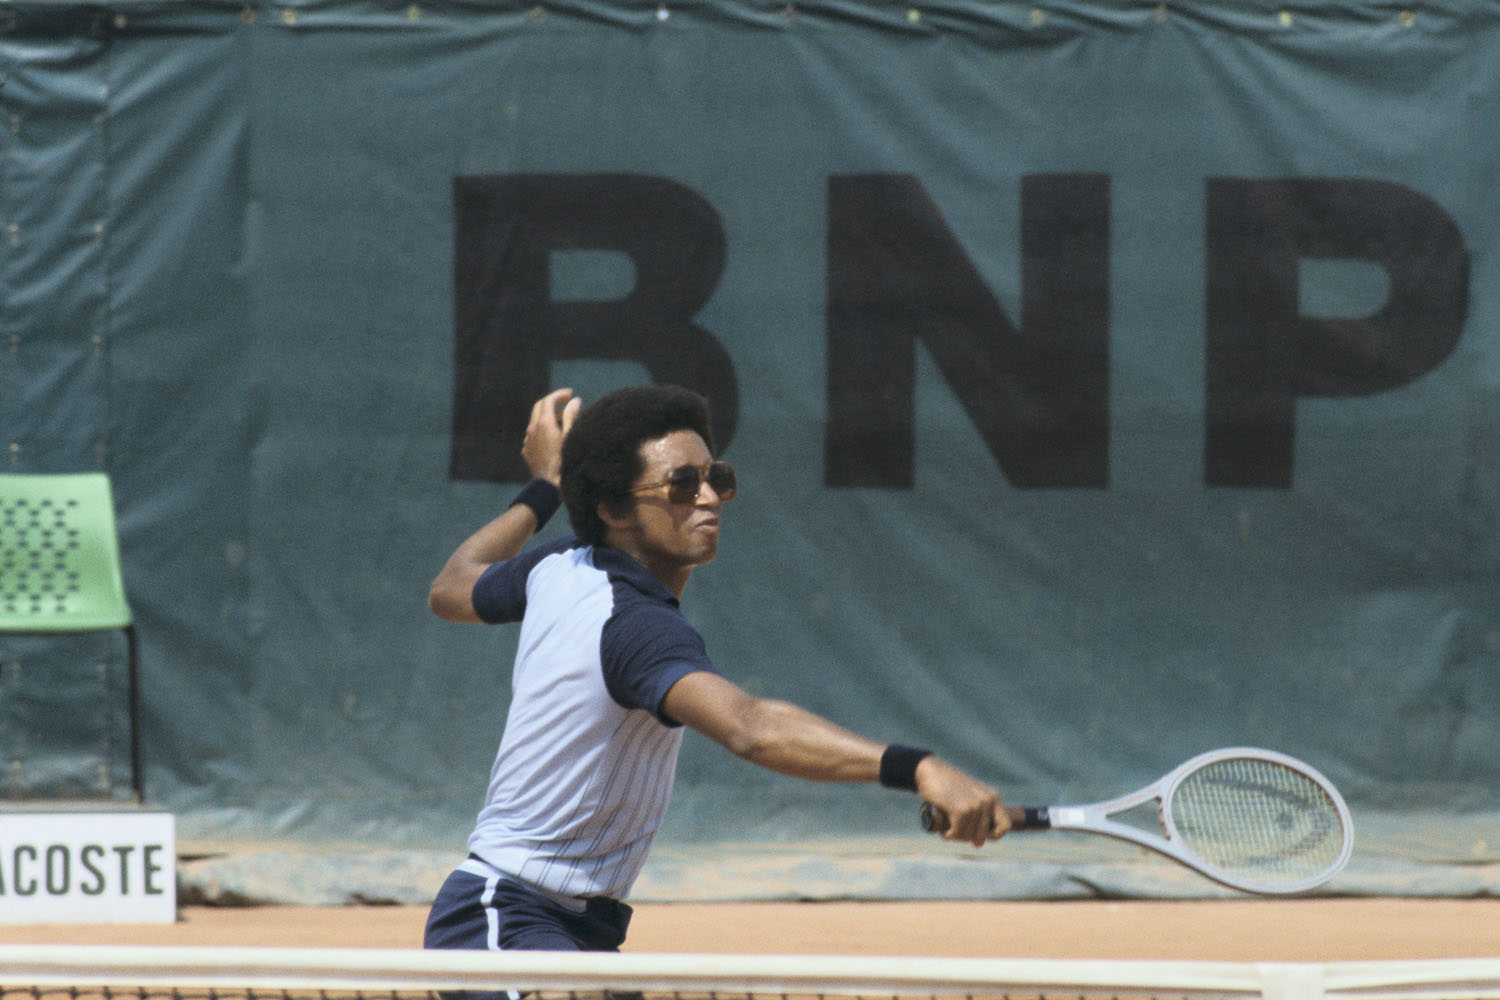 Arthur Ashe, complete with some flashy shades, participates in player training at Roland Garros in 1978.